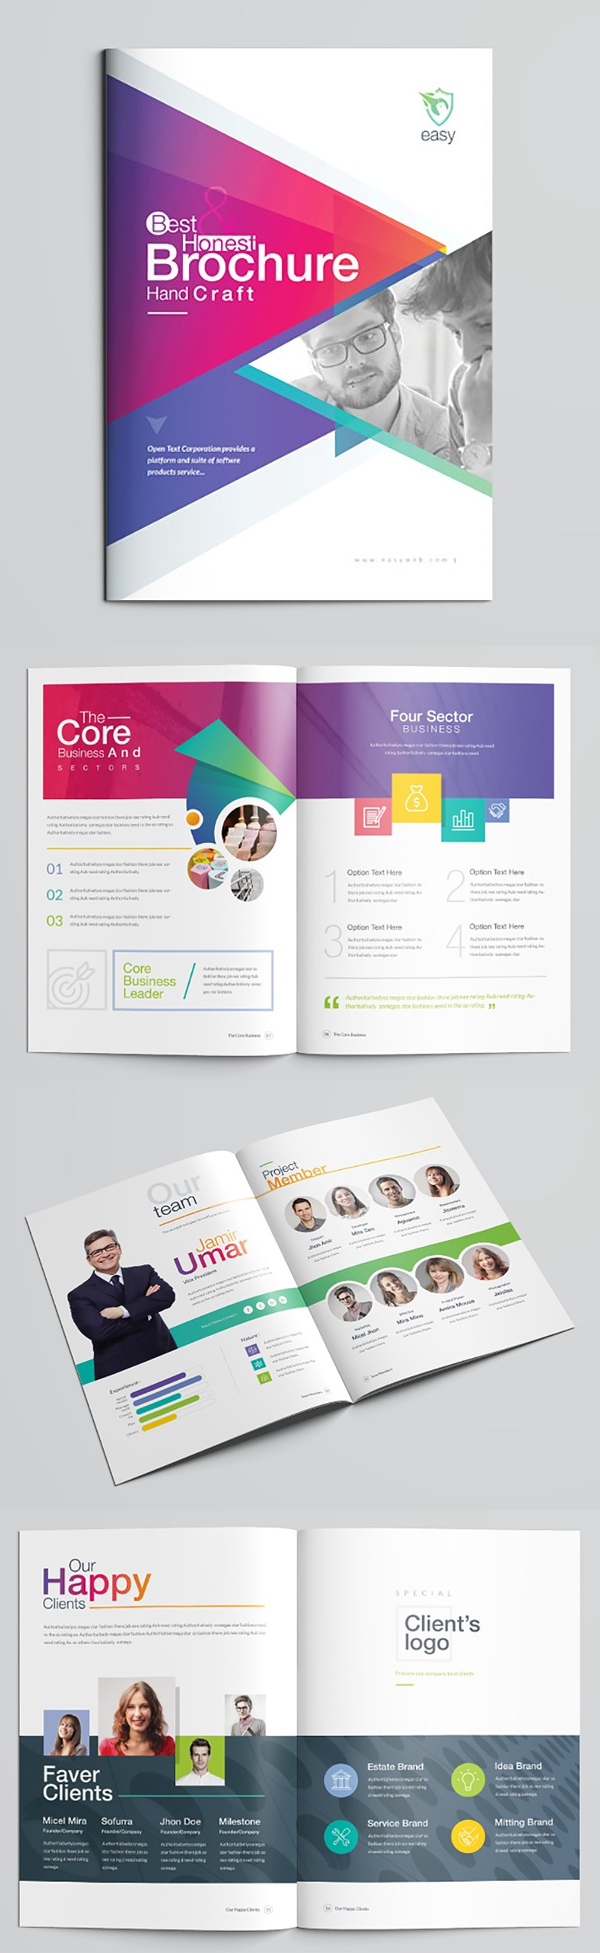 Awesome Brochure Template